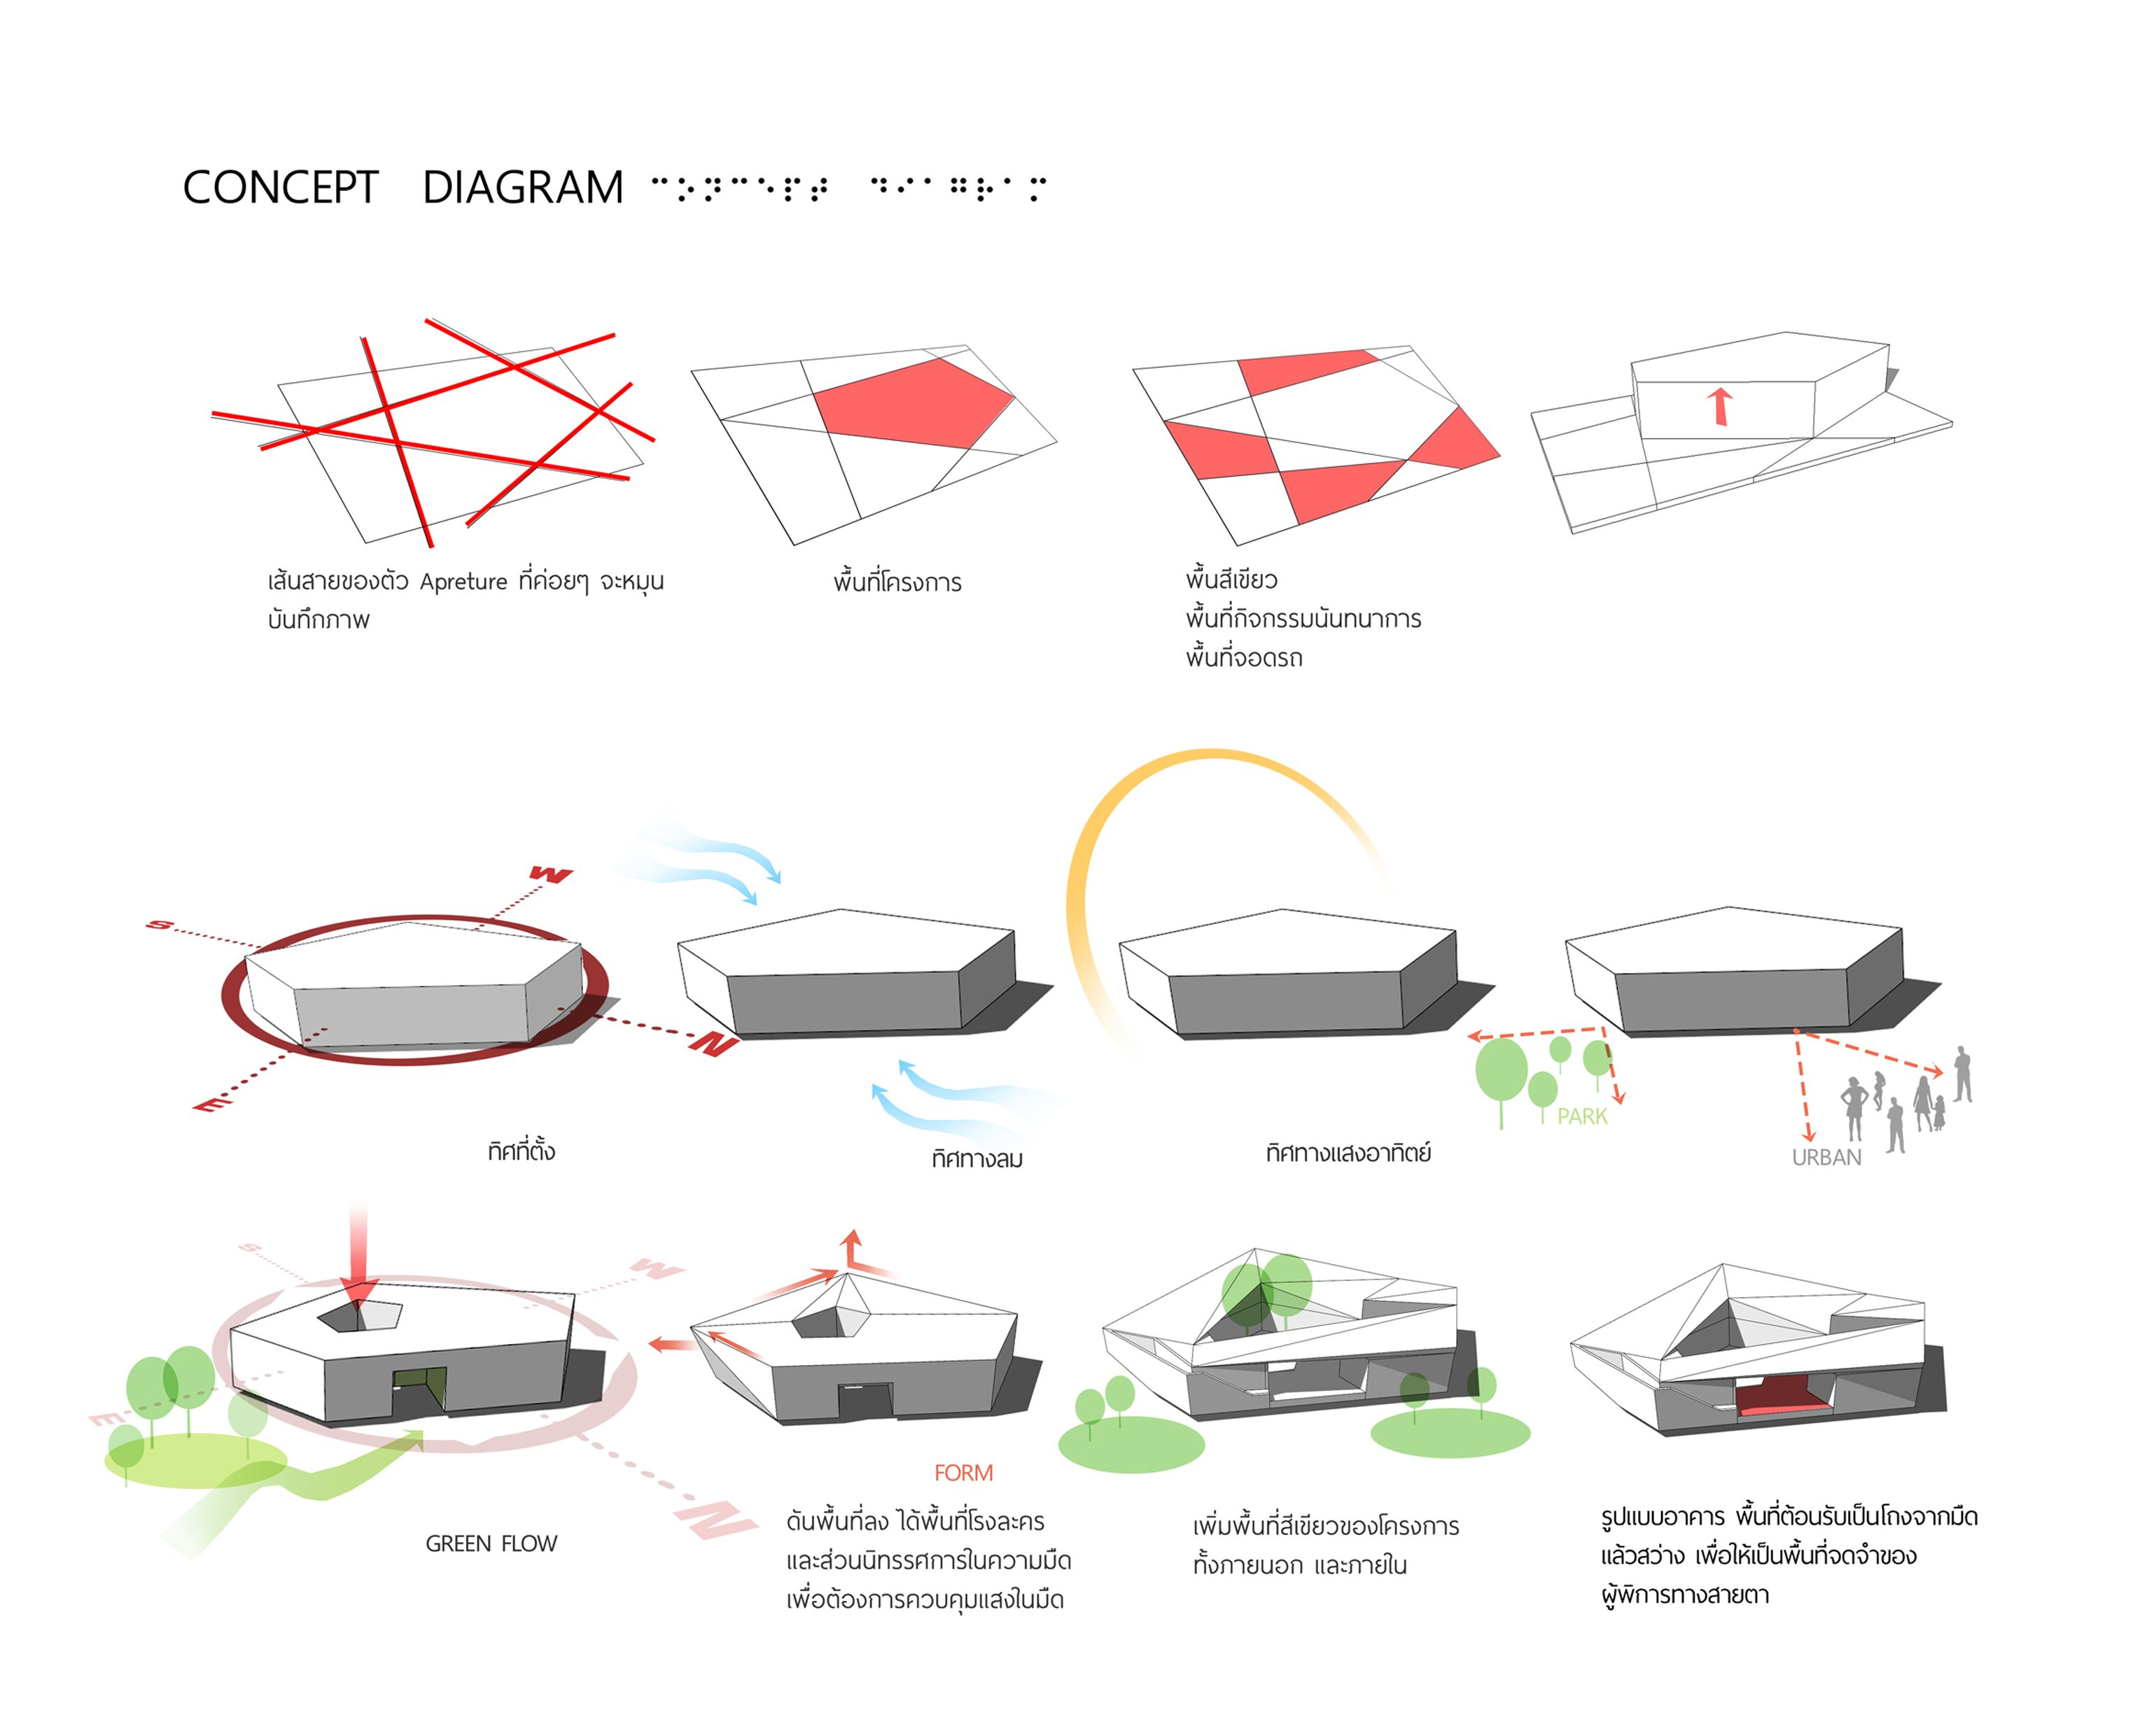 hight resolution of concept diagram u2026 architecture diagr u2026concept diagram plus